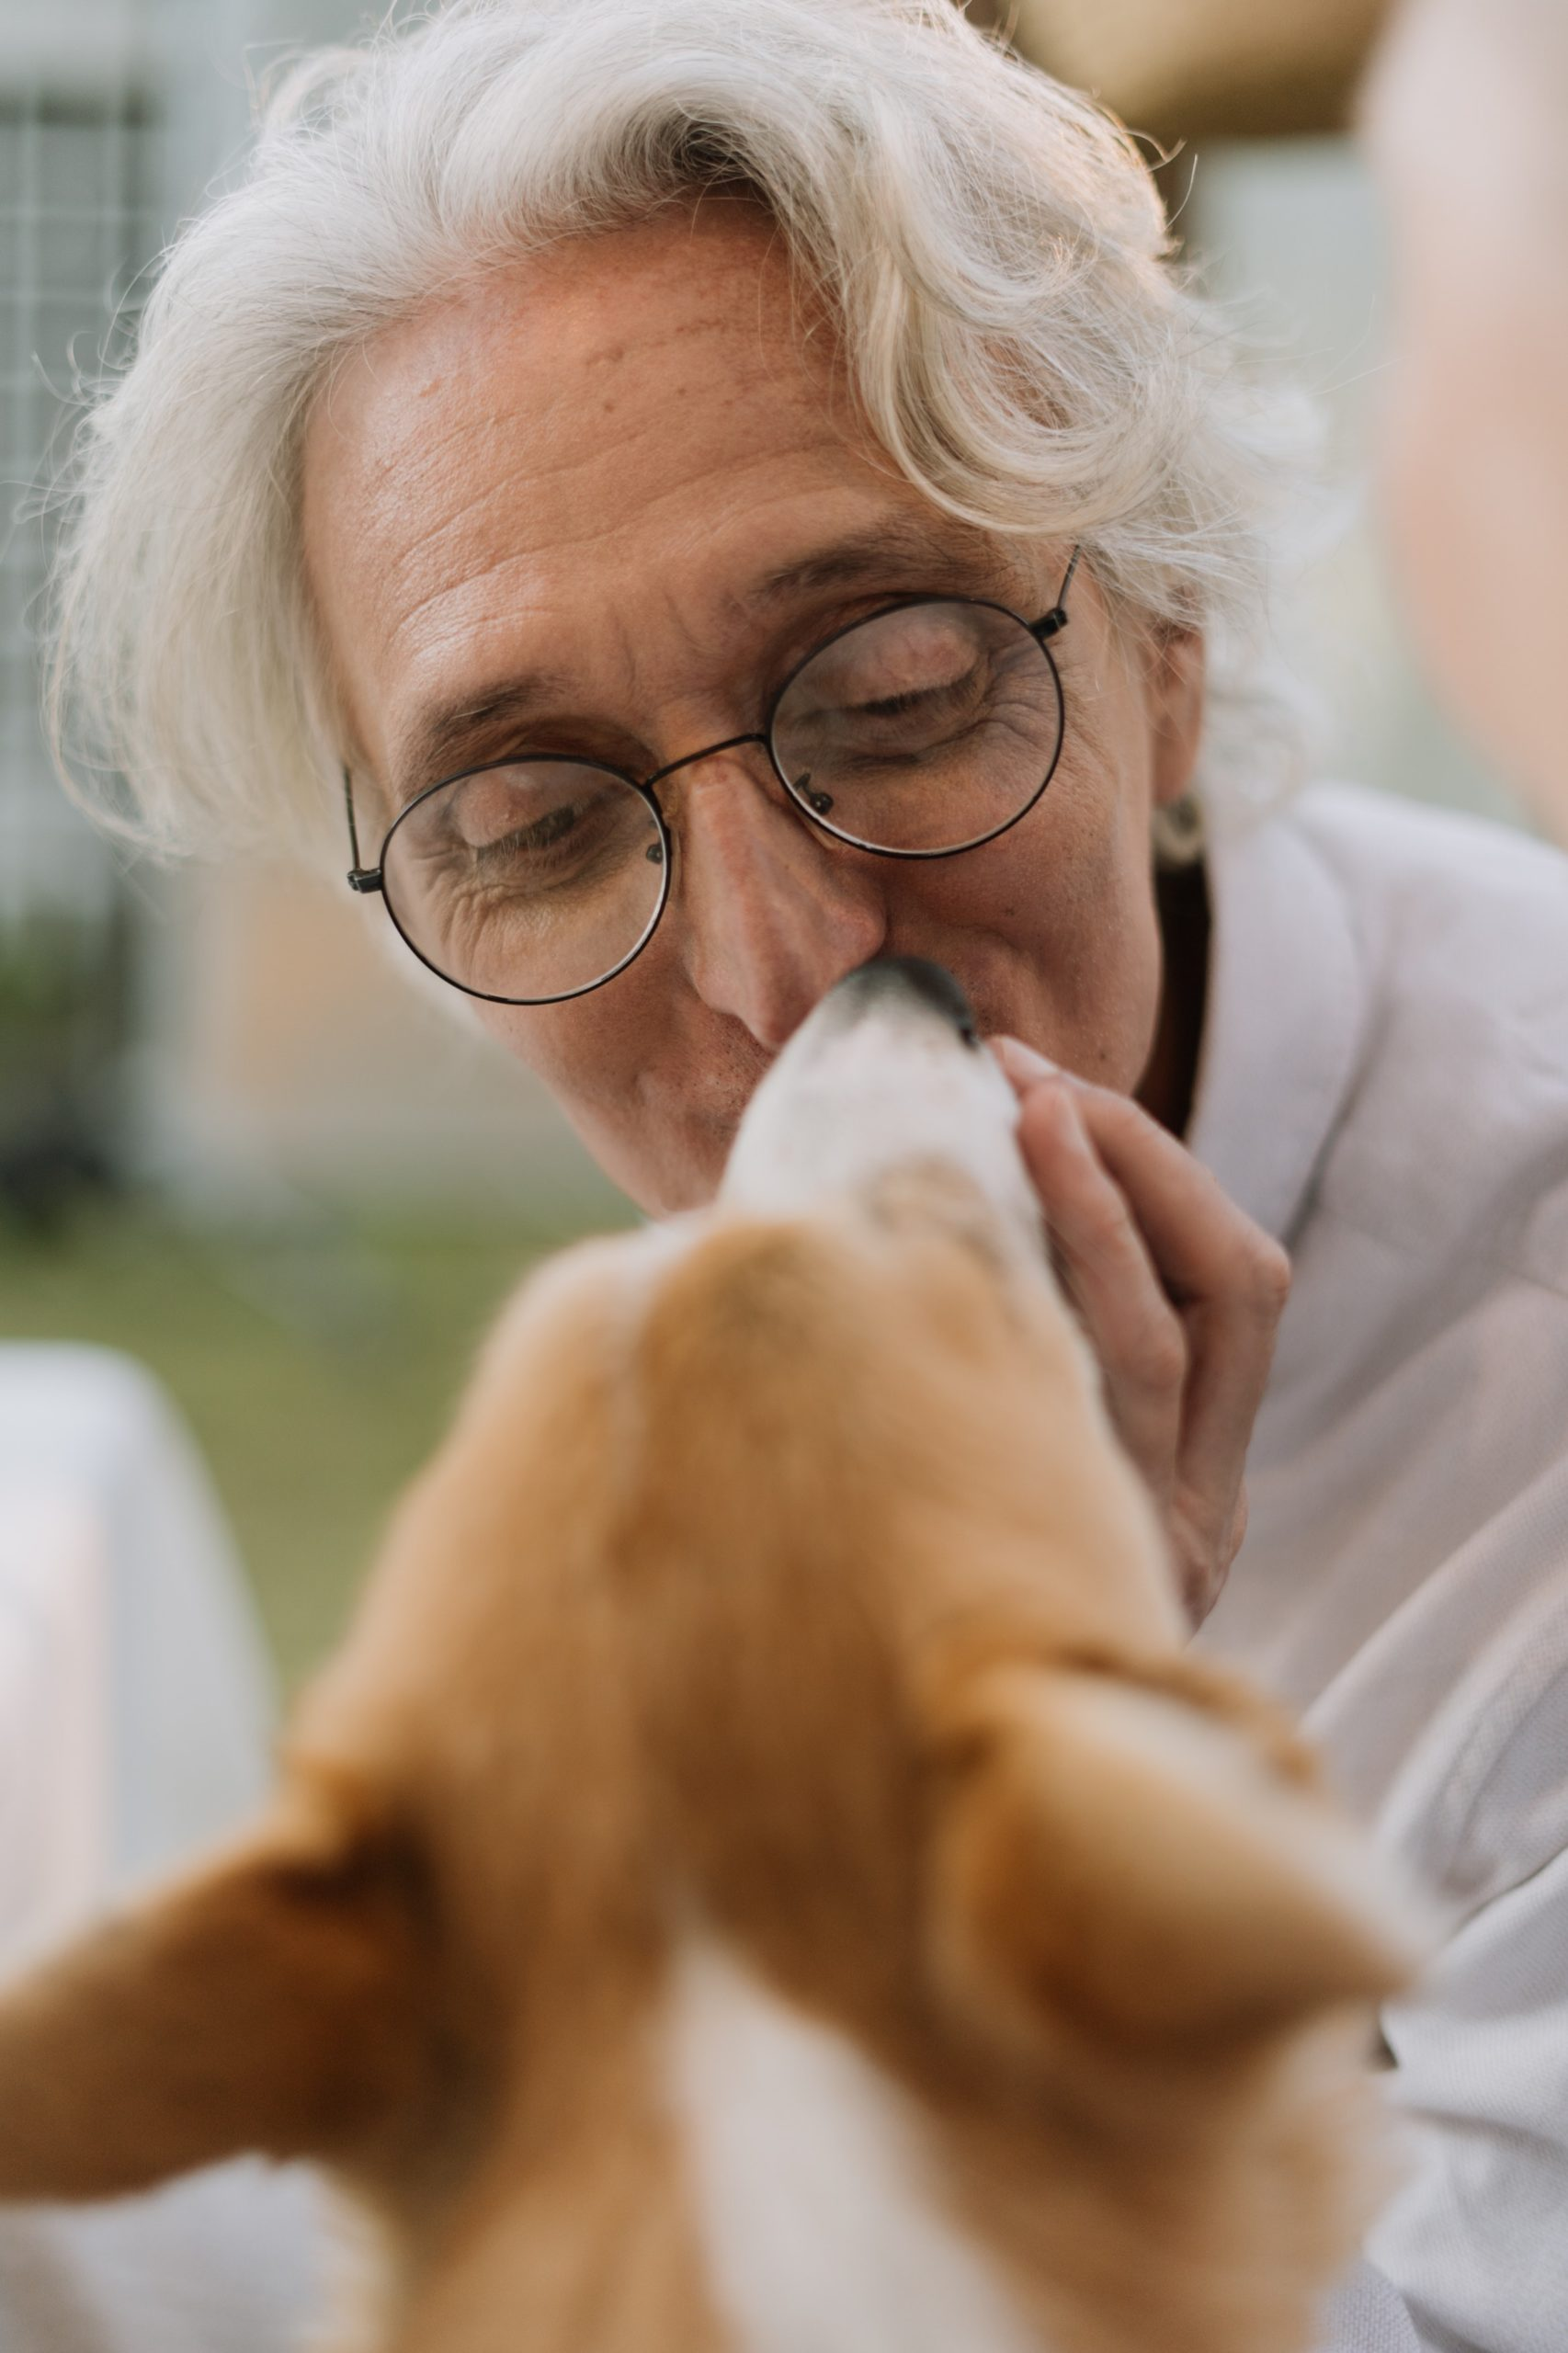 The Pros, Cons & Possibilities of Pet Ownership for Aging Adults